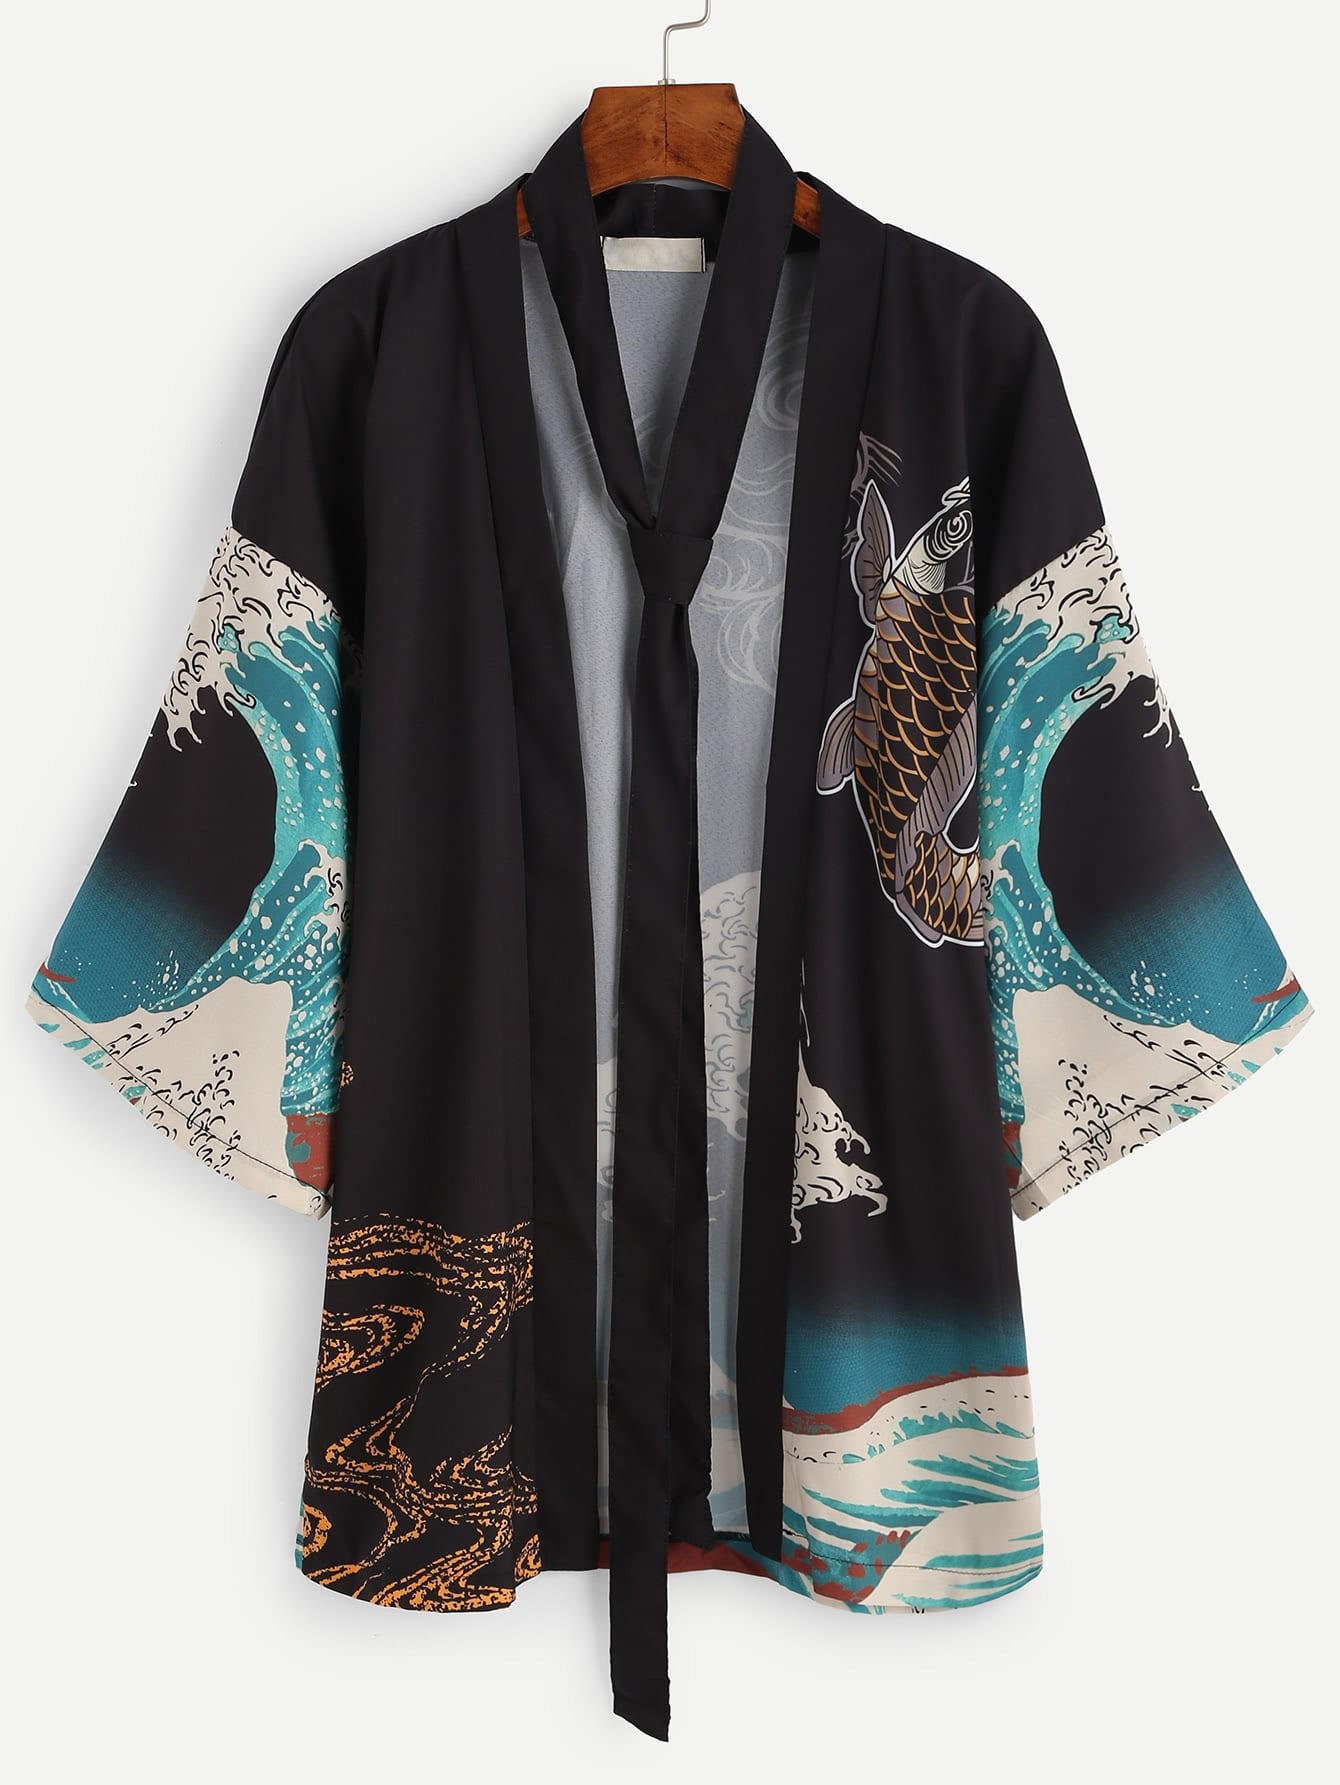 Kimonos are wildly popular in the fashion world this season, and offer endless style inspiration. We stock every imaginable style of kimono, and at prices that virtually anyone can afford. We feature summer kimonos that serve as bathing suit cover ups, and we offer more substantially weighted kimonos for the colder months of the year.